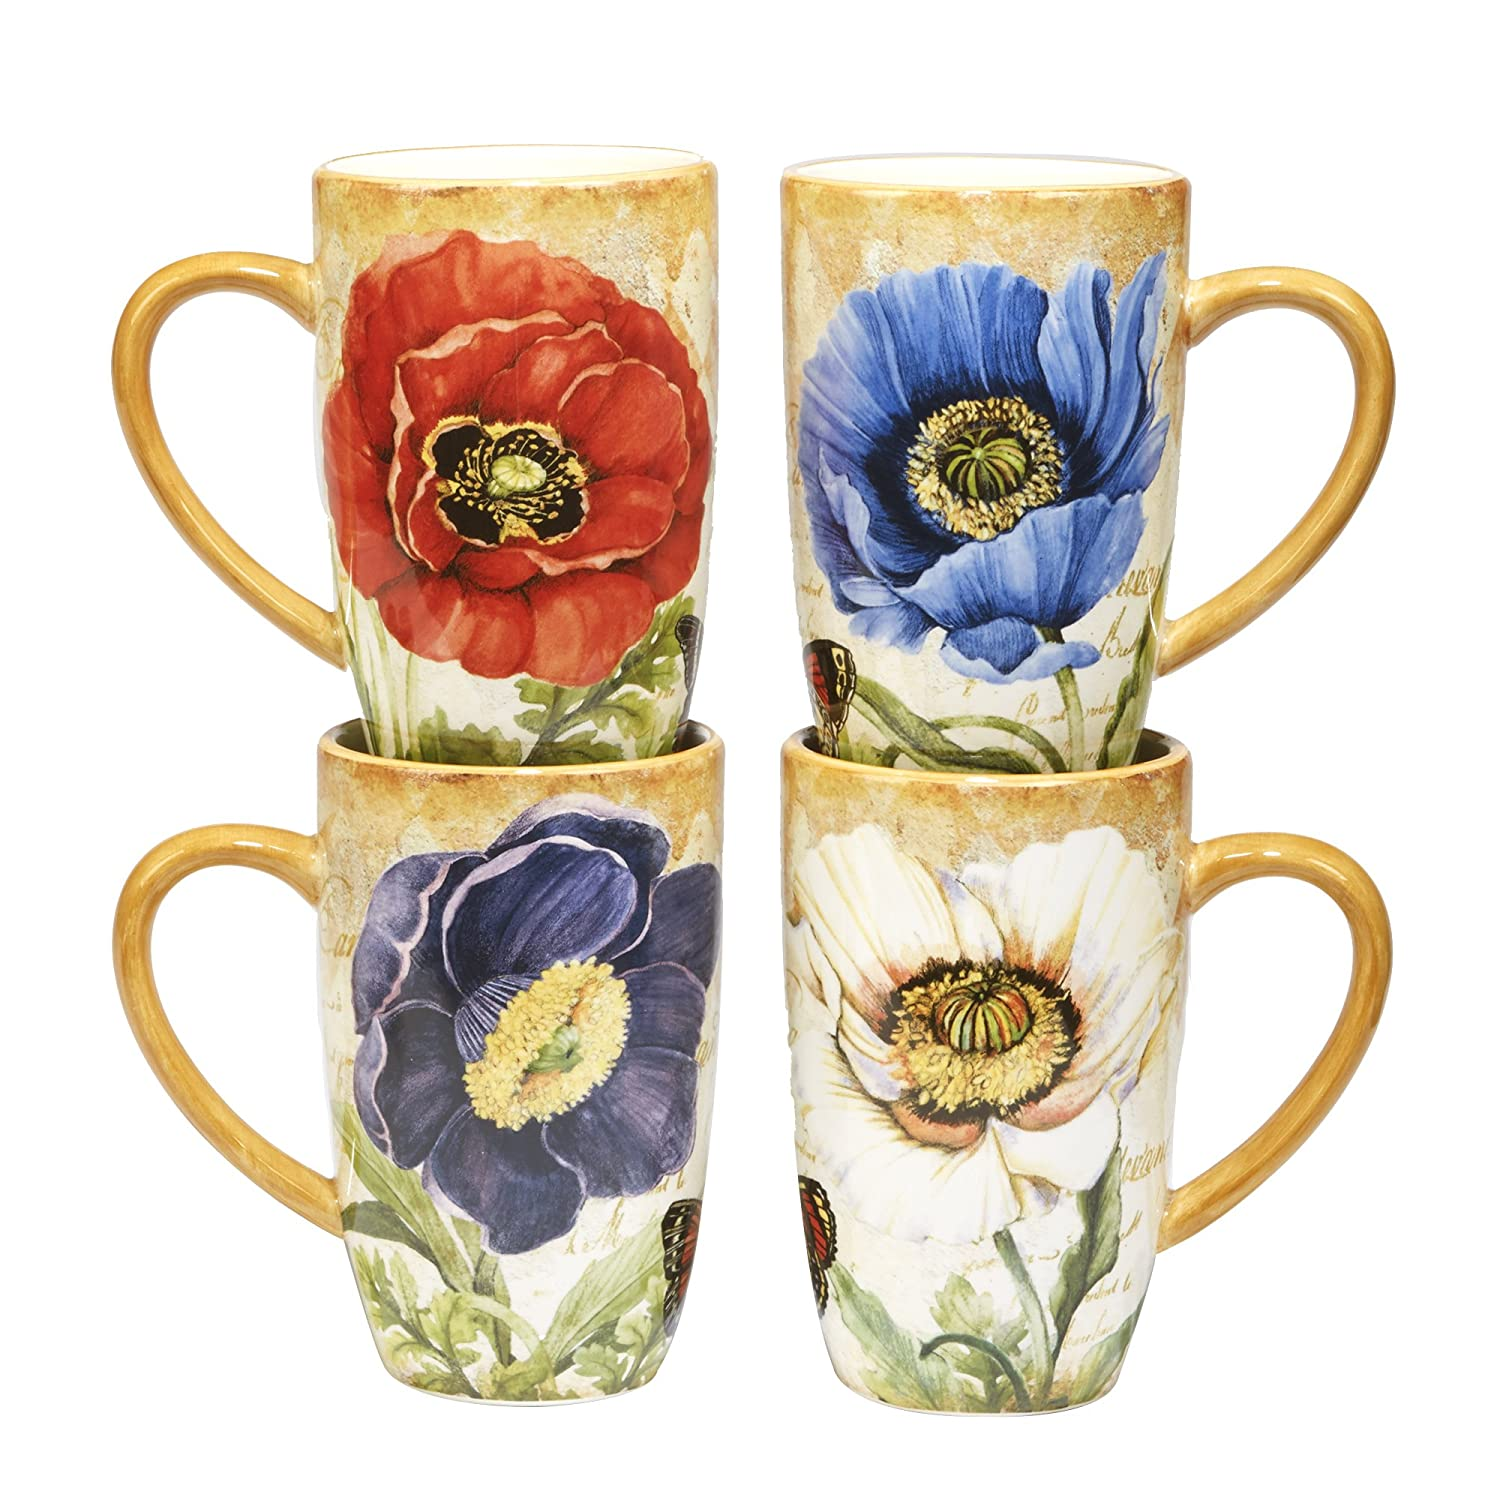 098e2f3fcb9 Amazon.com: Certified International Poppy Garden Mug 14 oz., Set of 4 Assorted  Designs: Kitchen & Dining